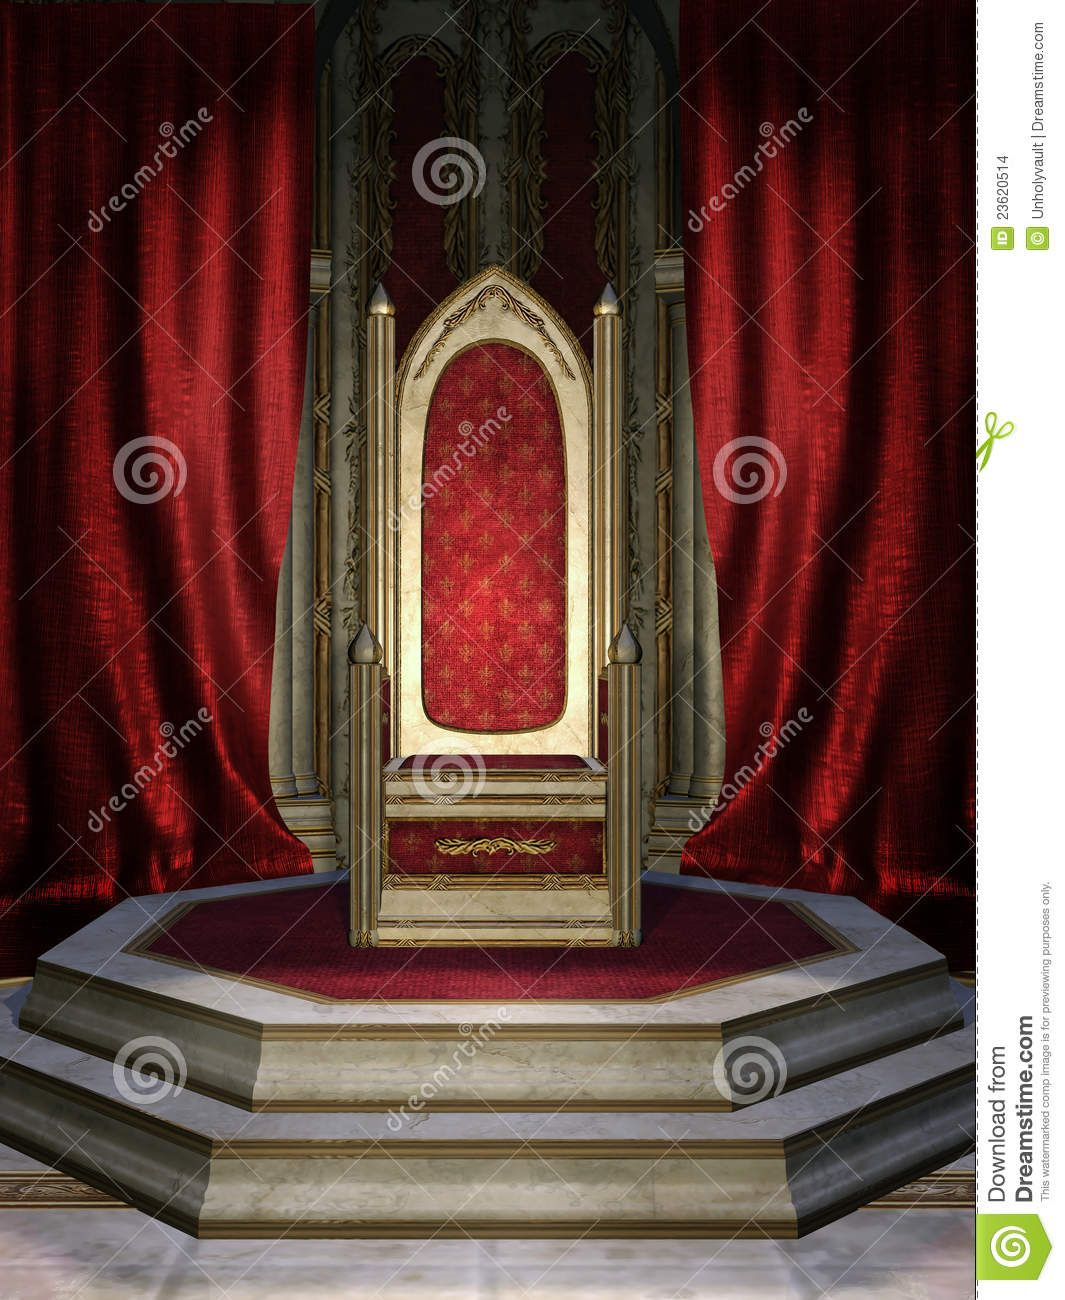 ancient throne - Google Search   Thrones   Throne room ...  ancient throne ...